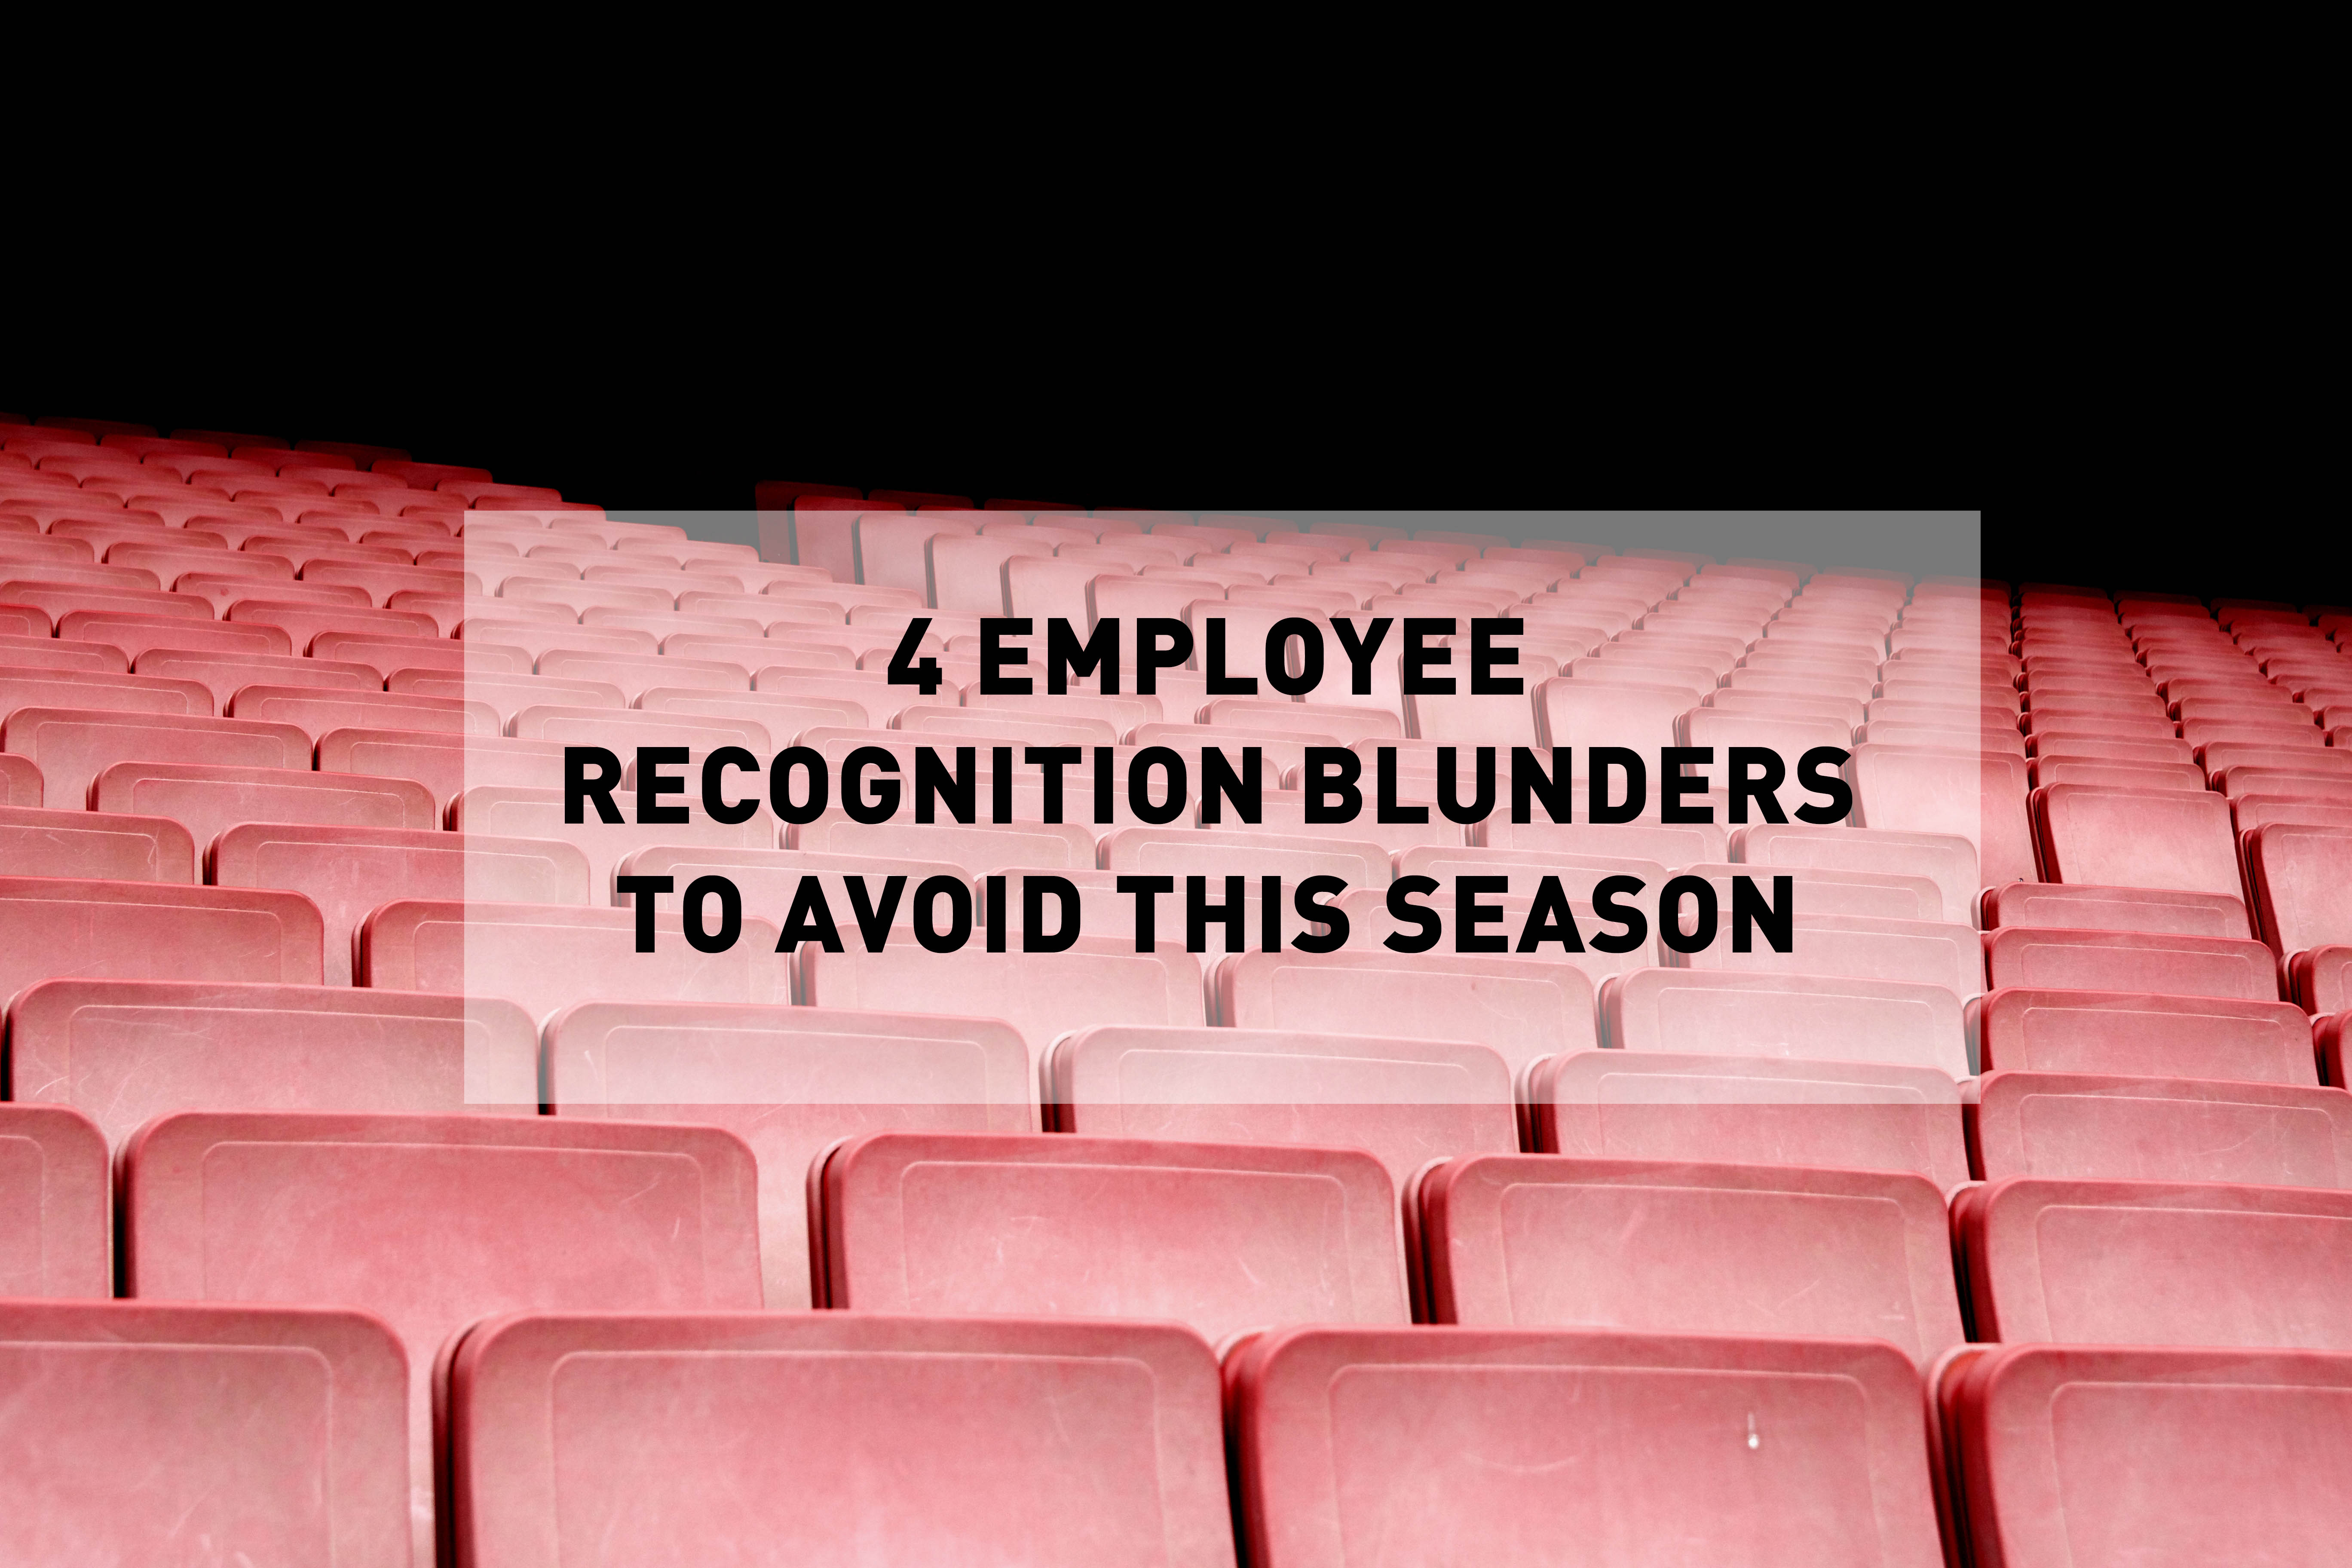 recognition blunders.jpg